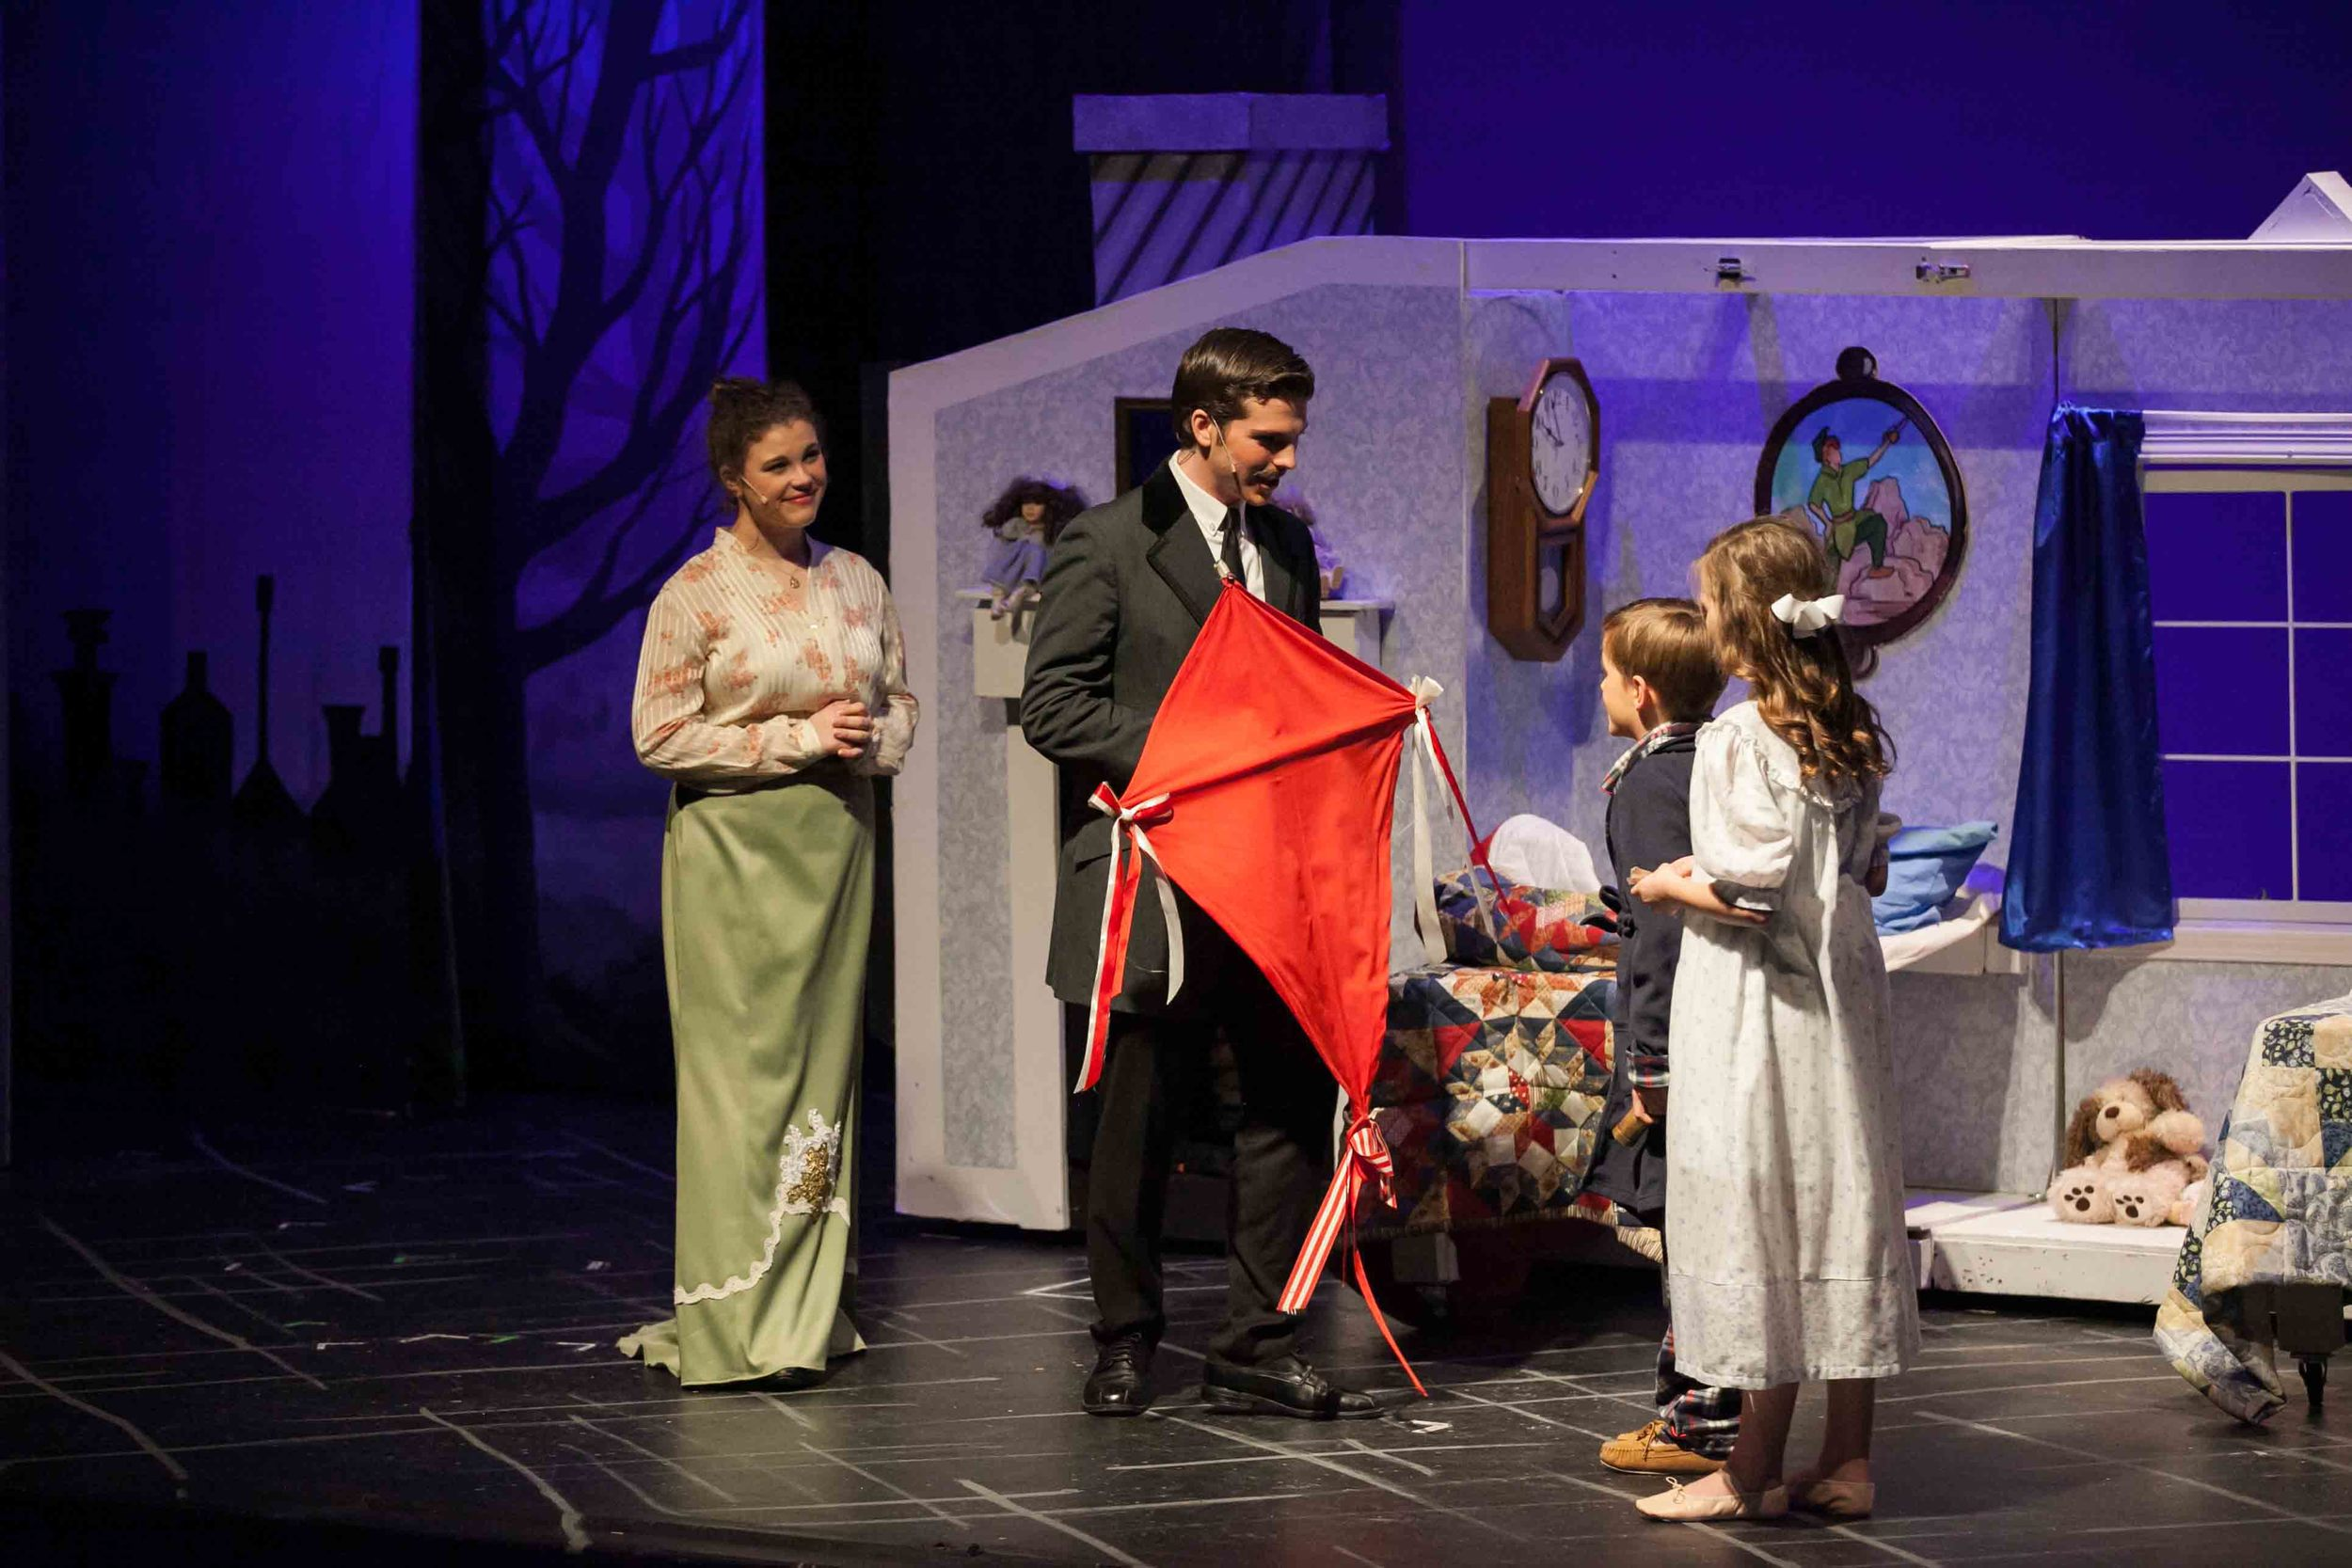 2-4-16 Mary Poppins Proper Cast 0474.jpg